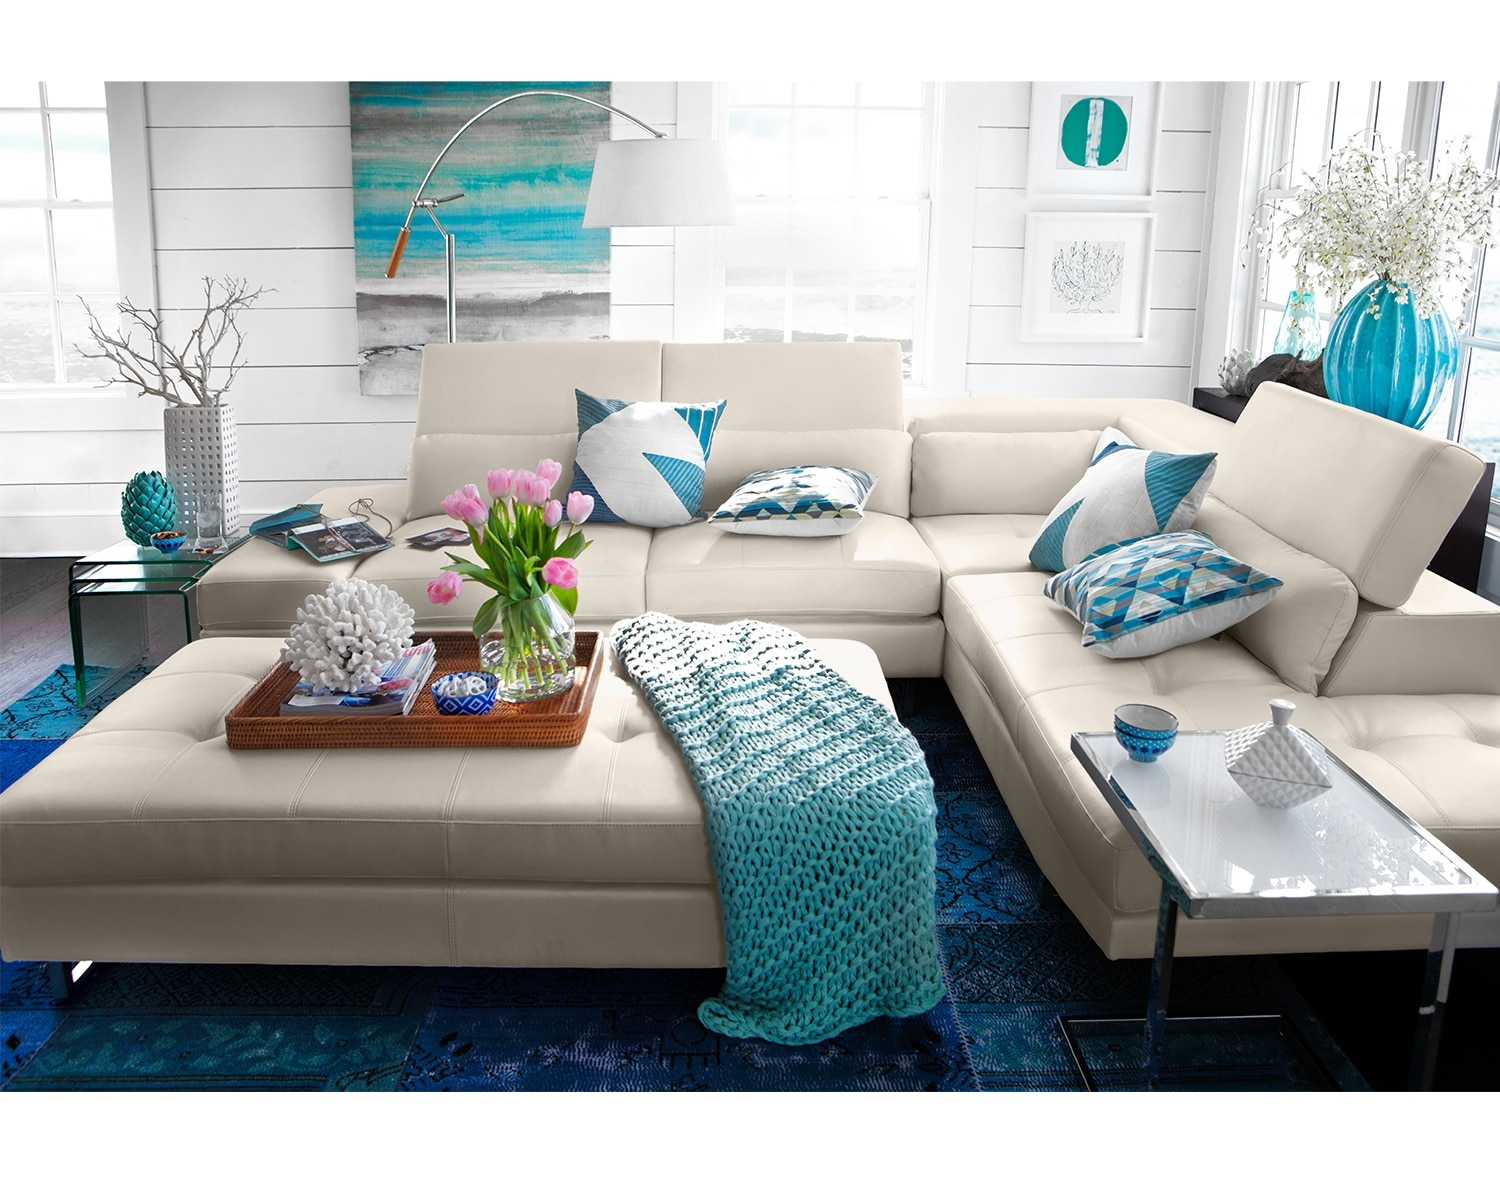 Living Room Furniture - The Milan White Collection - 2 Pc. Sectional